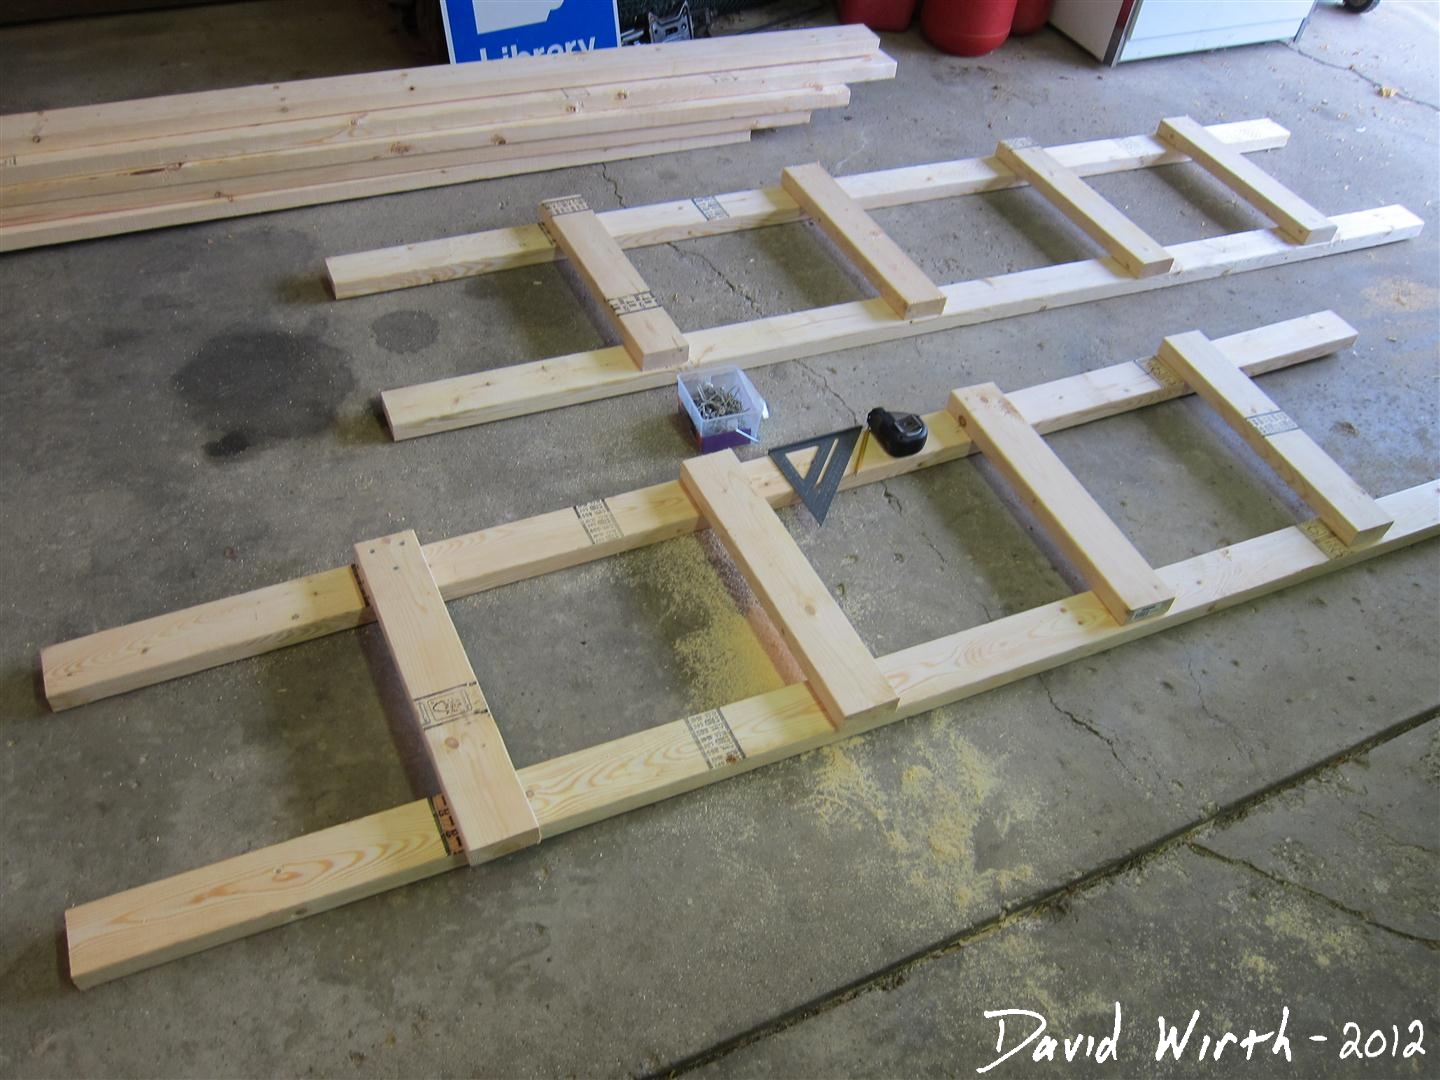 Wonderful image of 20 Planer Review How To Build Corner Shelves In Garage Wooden  with #213D84 color and 1440x1080 pixels